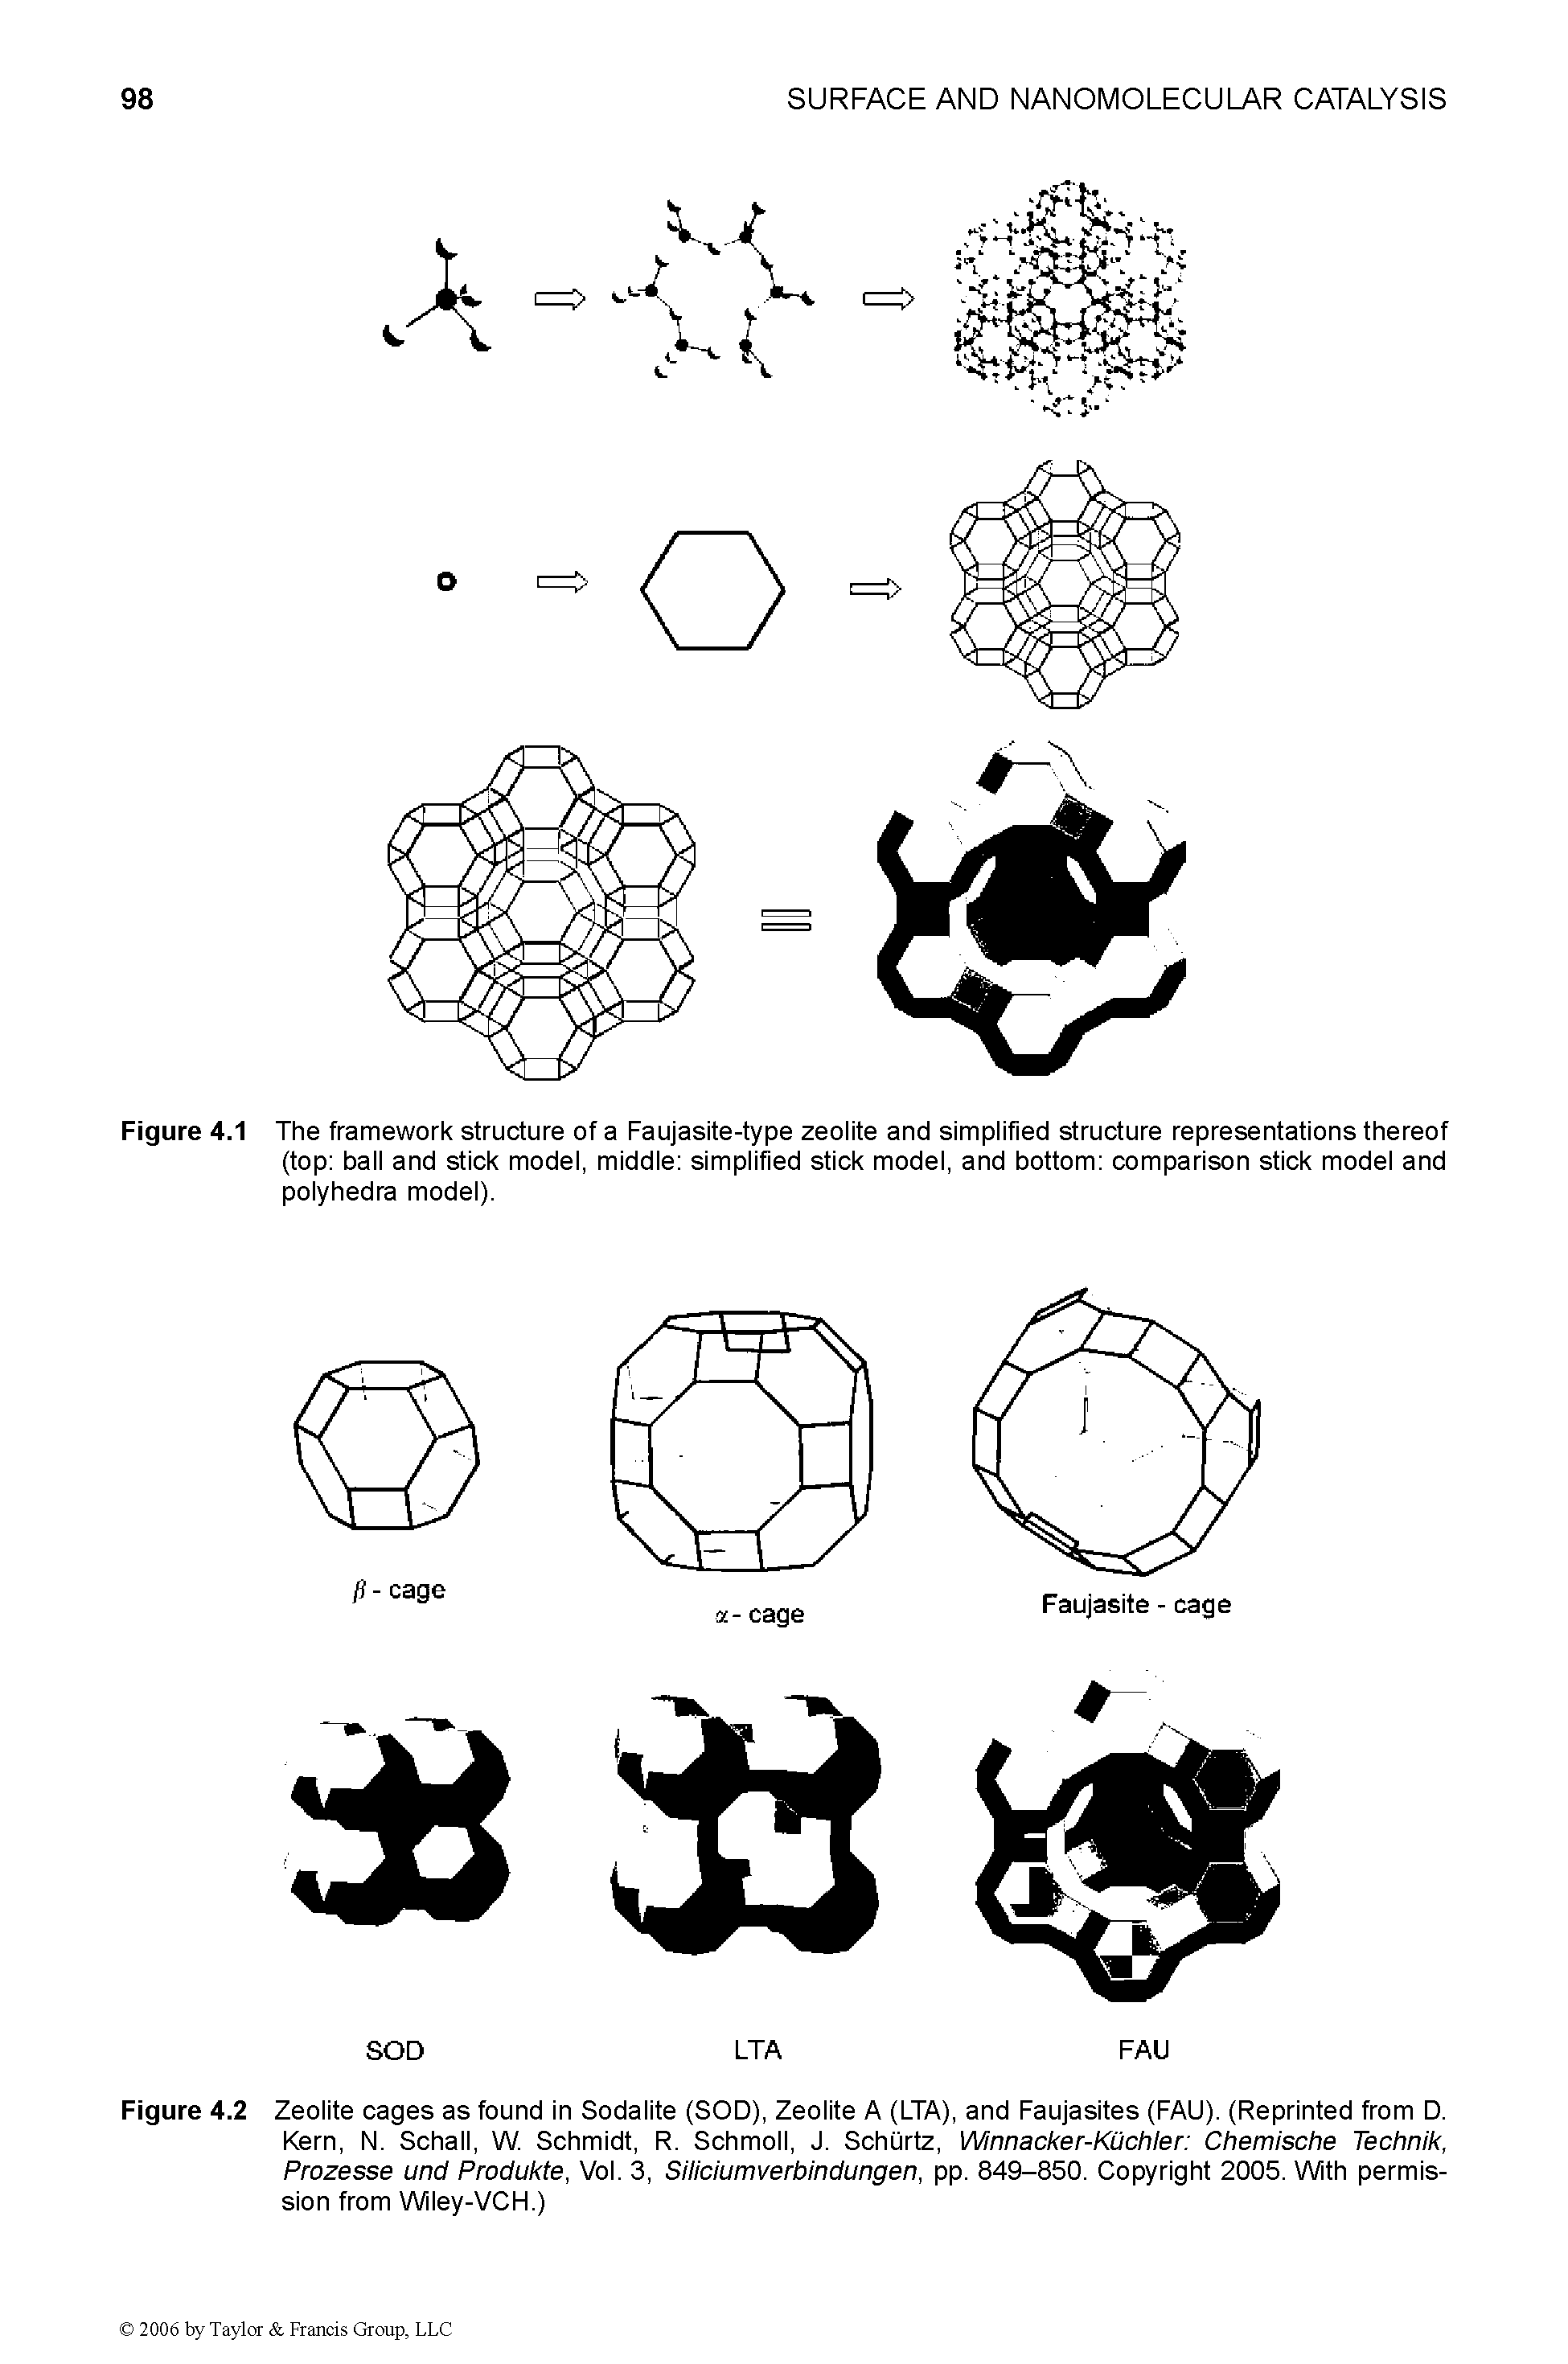 Figure 4.1 The framework structure of a Faujasite-type zeolite and simplified structure representations thereof (top ball and stick model, middle simplified stick model, and bottom comparison stick model and polyhedra model).